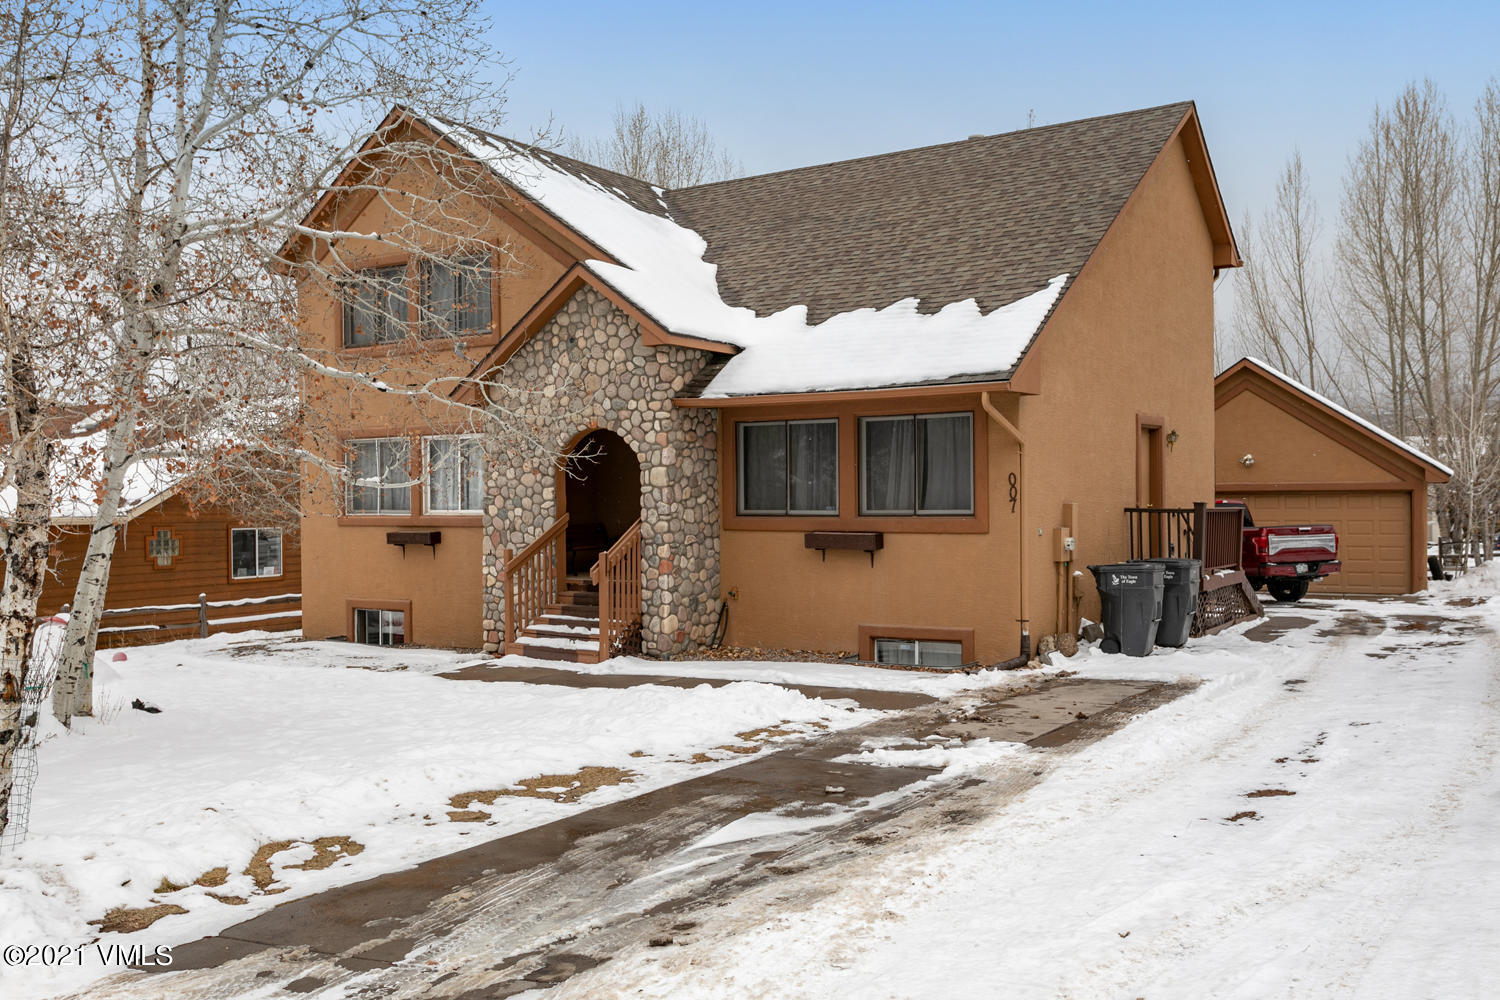 Fantastic opportunity to own in the Terrace in Eagle, walking distance to theaters, restaurants, hiking and biking trails and close to all Eagle has to offer. This 5 bed 4 bath home has 2 separate living areas, a separate lock-off in the basement with private entrance.